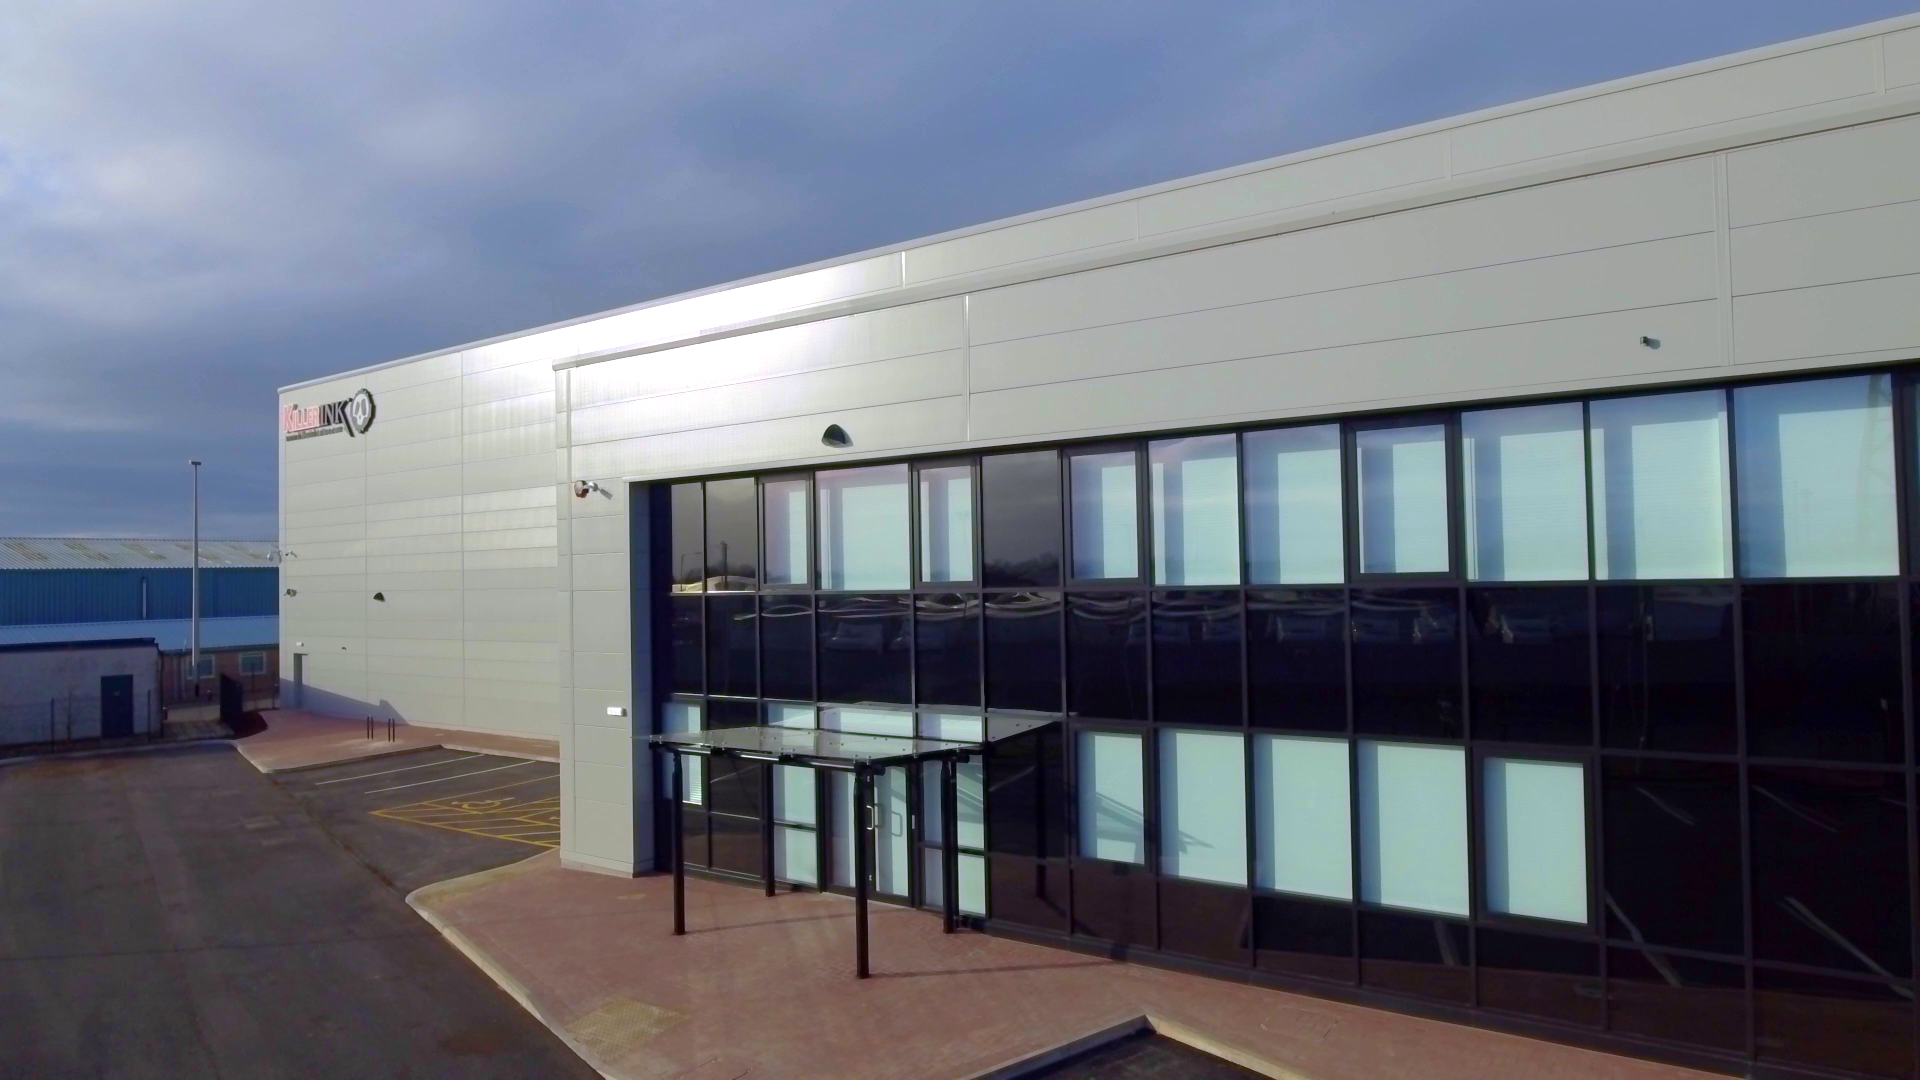 Manchester Industrial Roofing Cladding Contractors Total Roofing Cladding